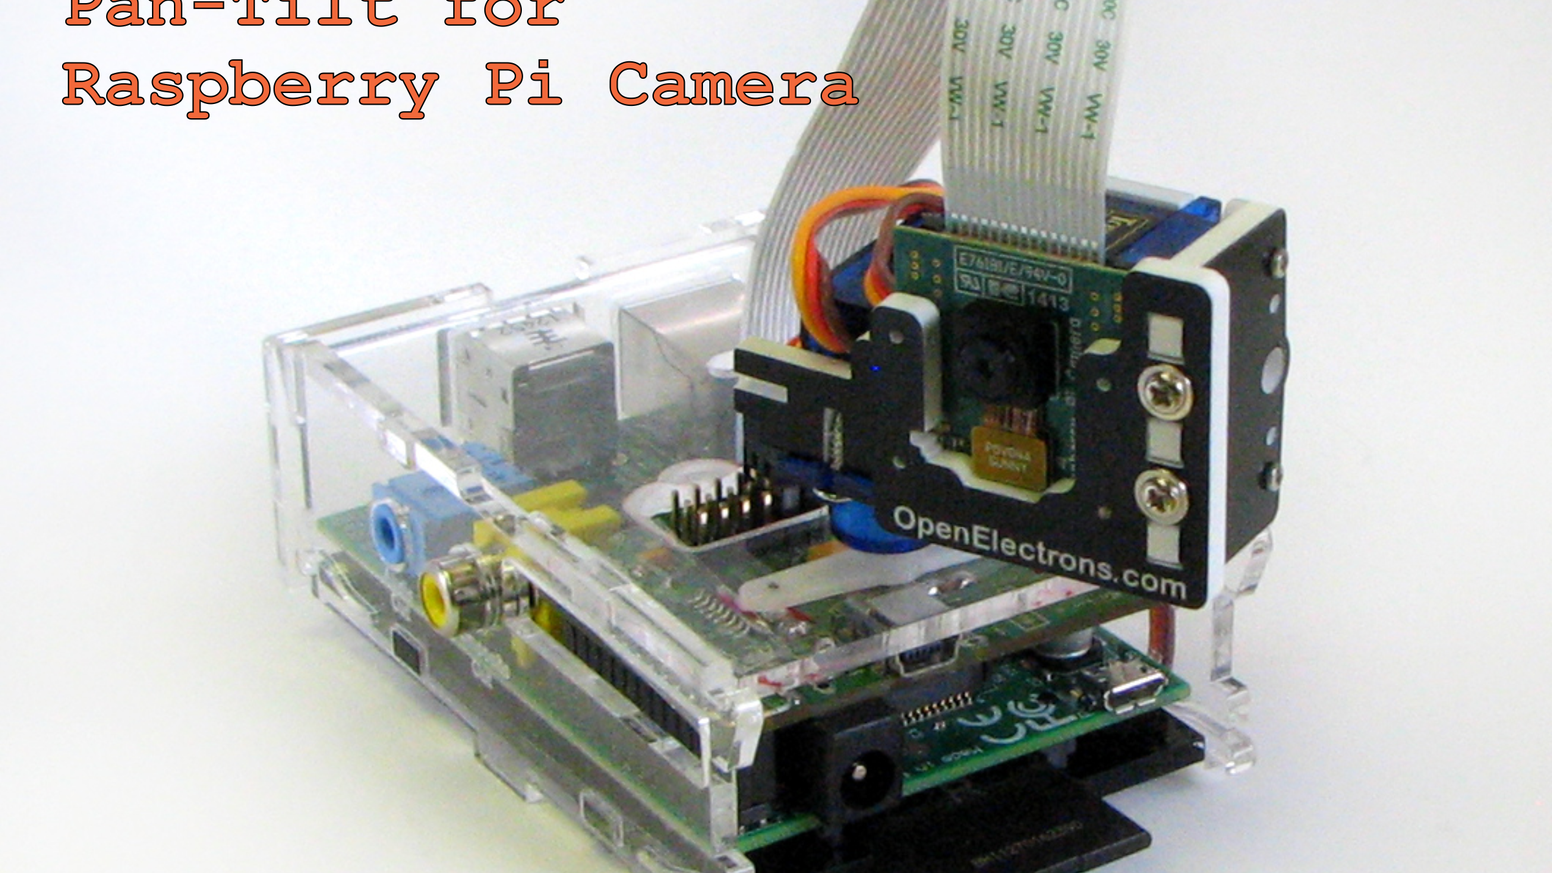 Pi-Pan, a Pan-Tilt for Raspberry Pi Camera by OpenElectrons